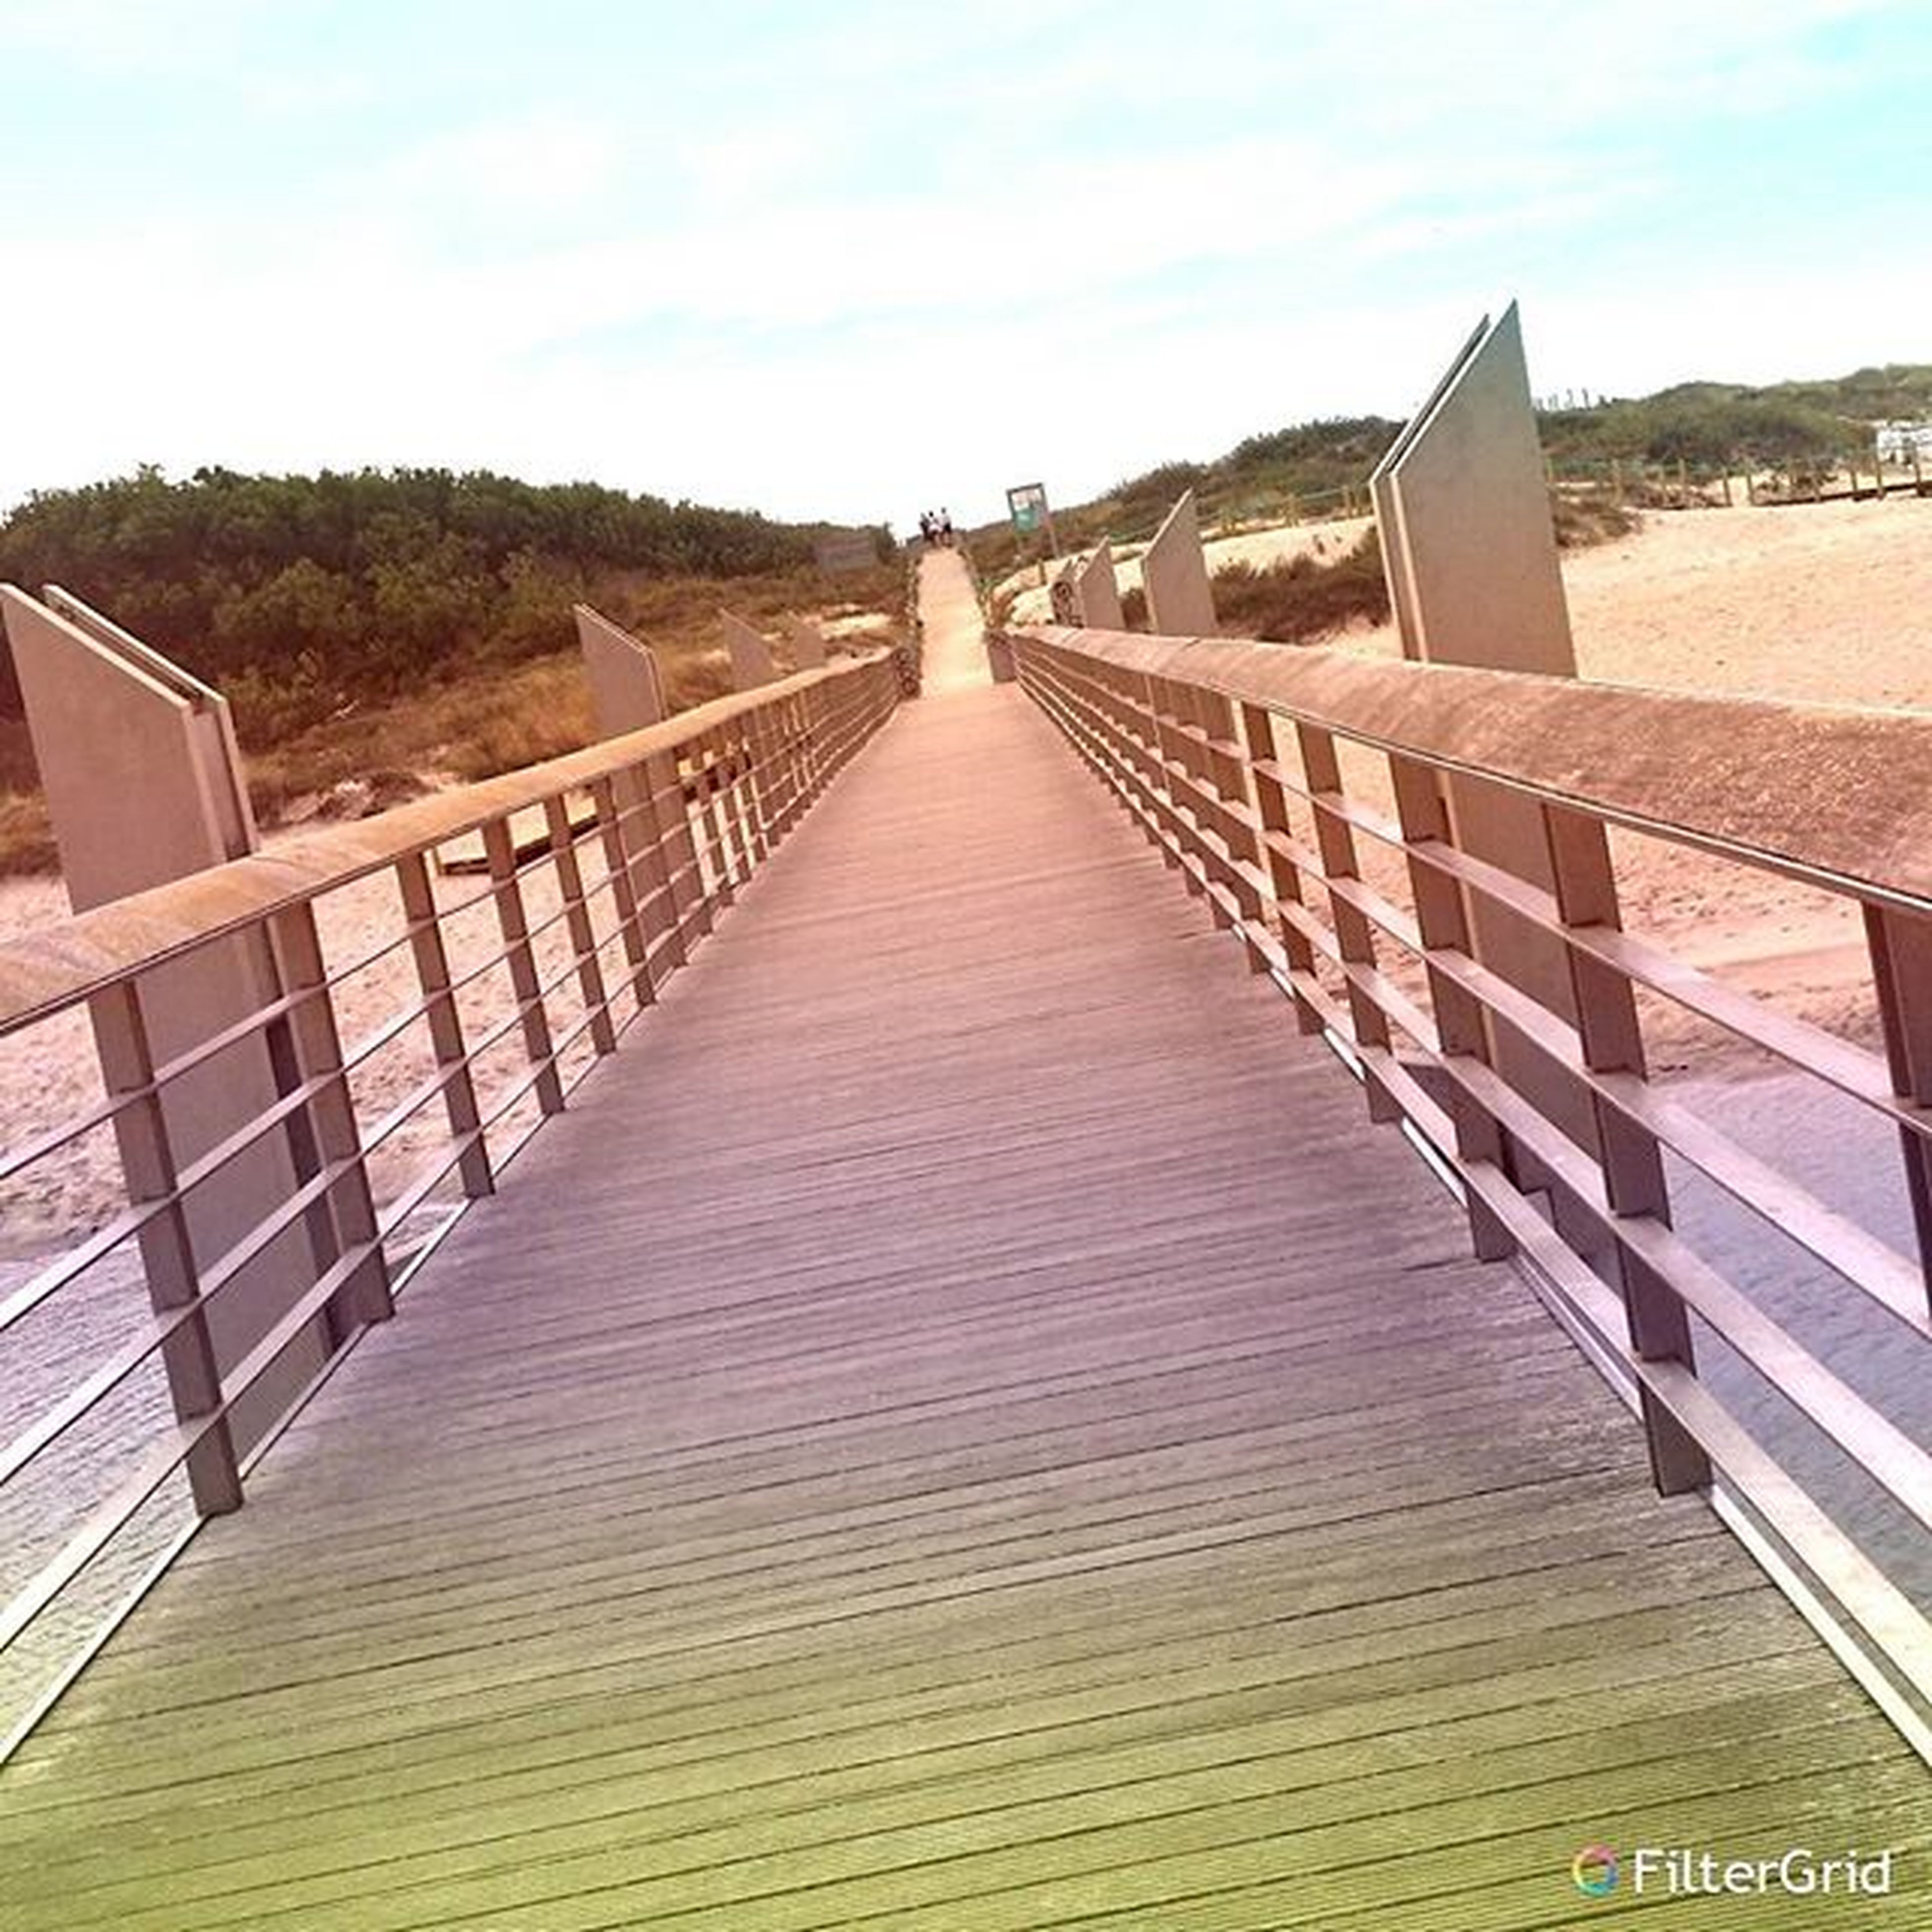 built structure, architecture, the way forward, railing, diminishing perspective, building exterior, sky, connection, footbridge, boardwalk, bridge - man made structure, vanishing point, wood - material, long, sunlight, outdoors, day, bridge, walkway, no people